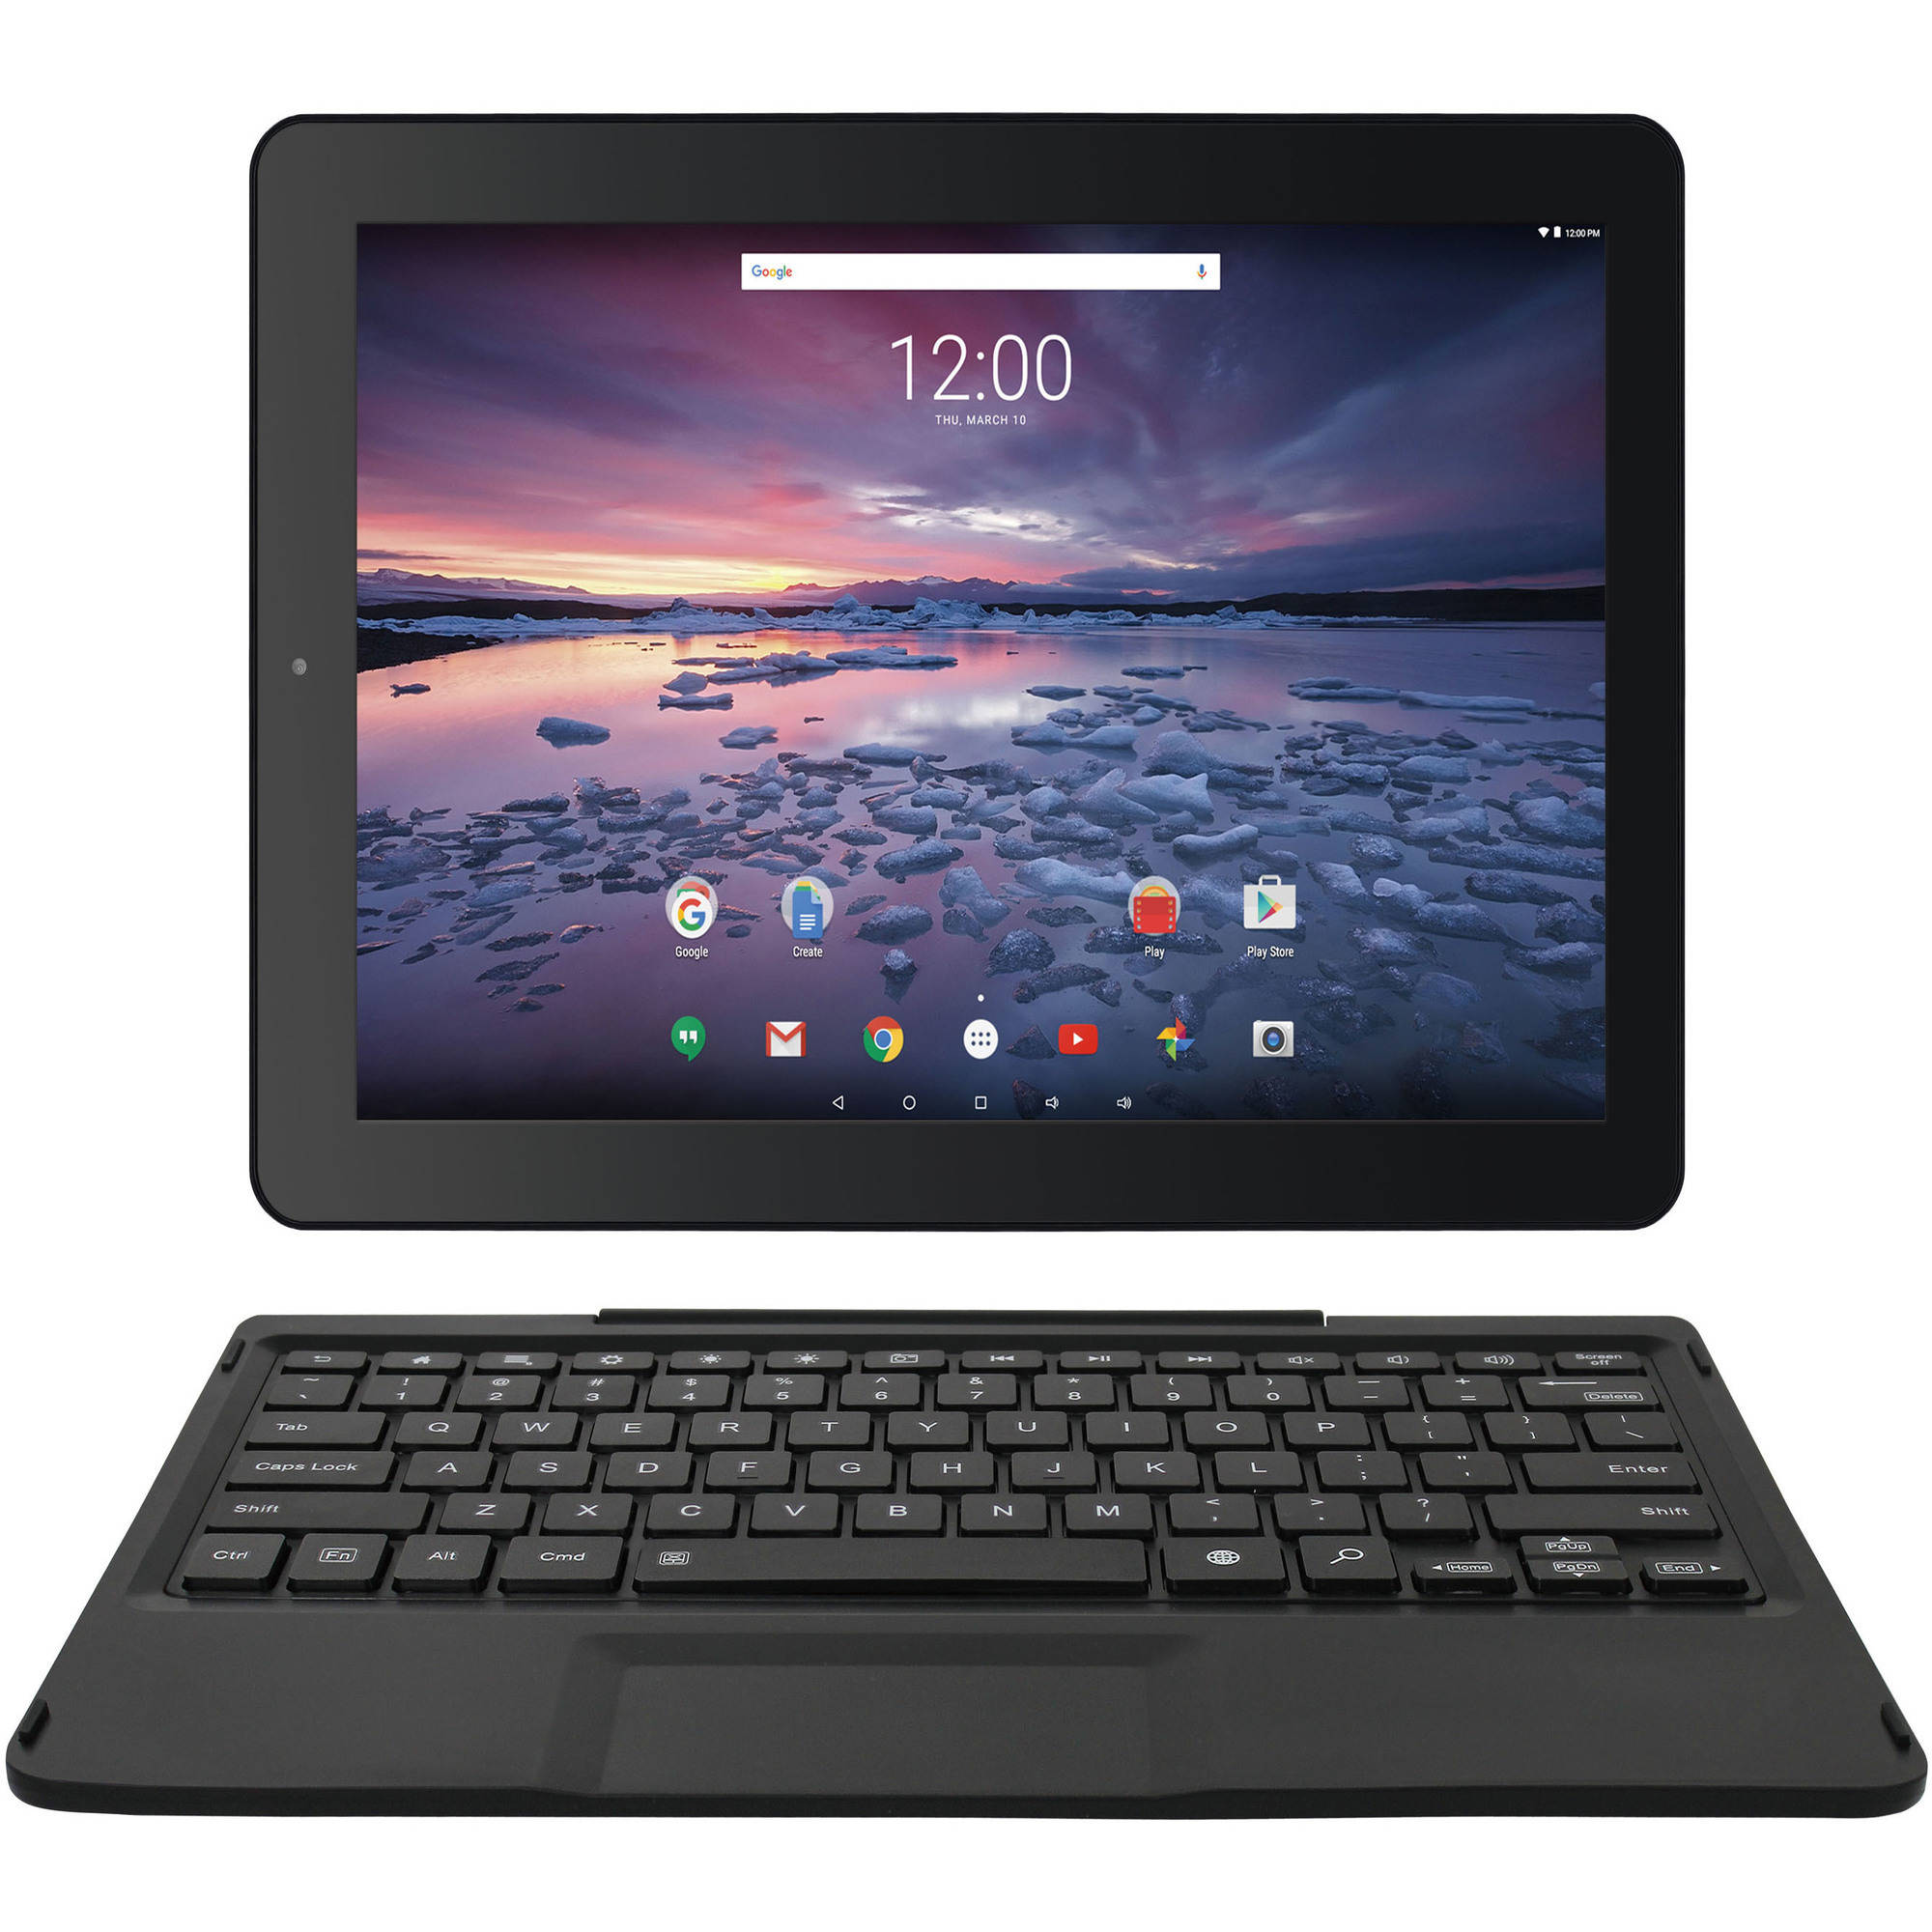 """Pro12 with WiFi 12.2"""" Touchscreen Tablet PC Featuring Android 6.0 (Marshmallow) Operating System, Black"""